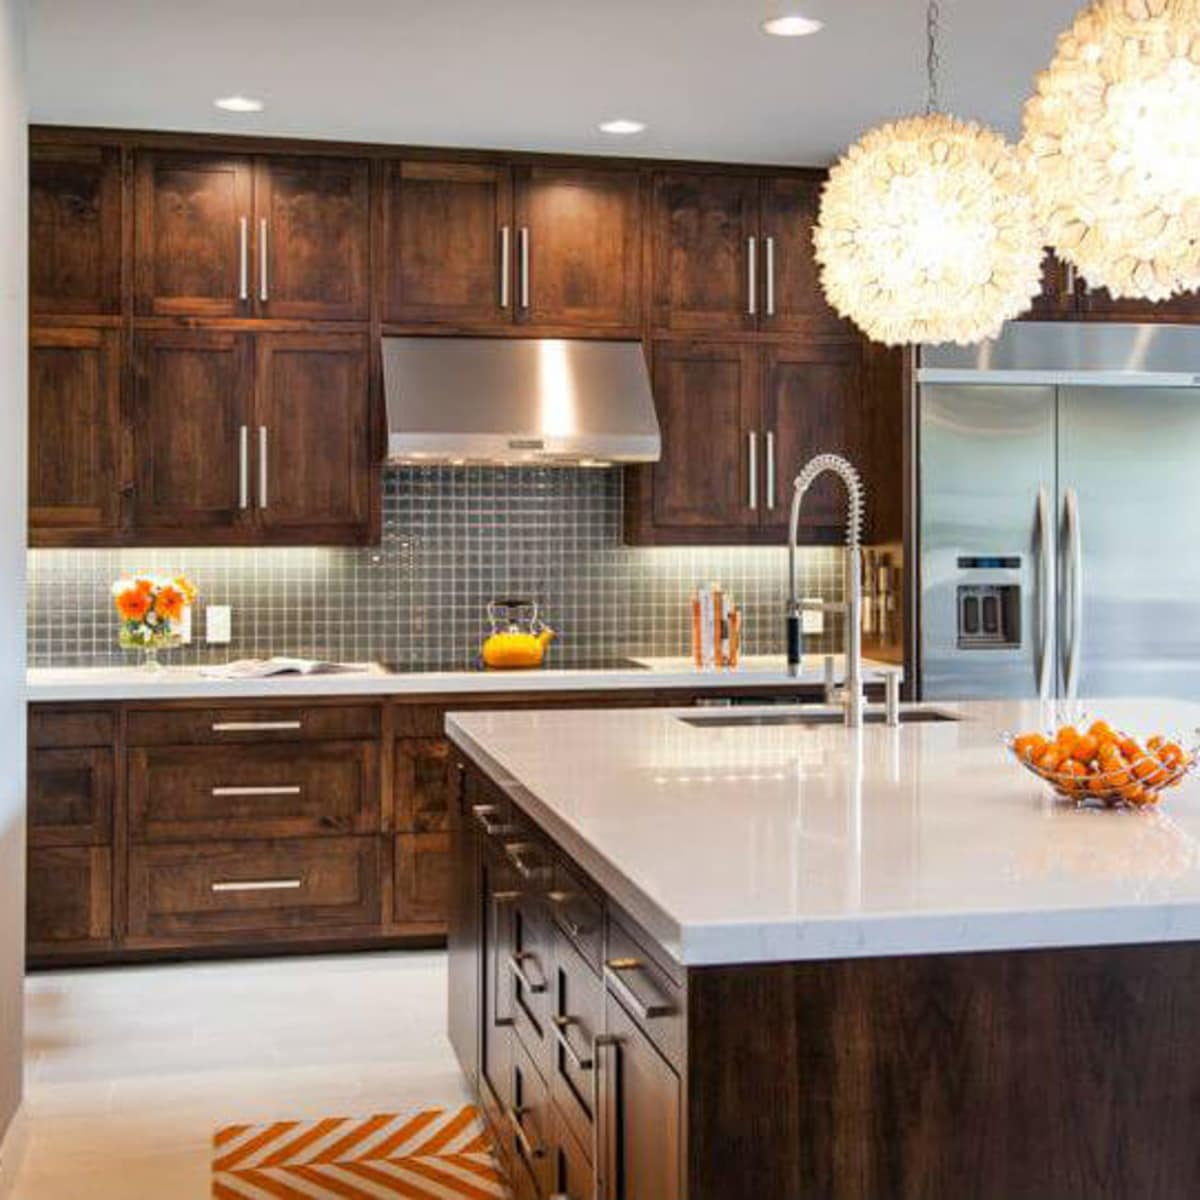 Allison Jaffe kitchen design